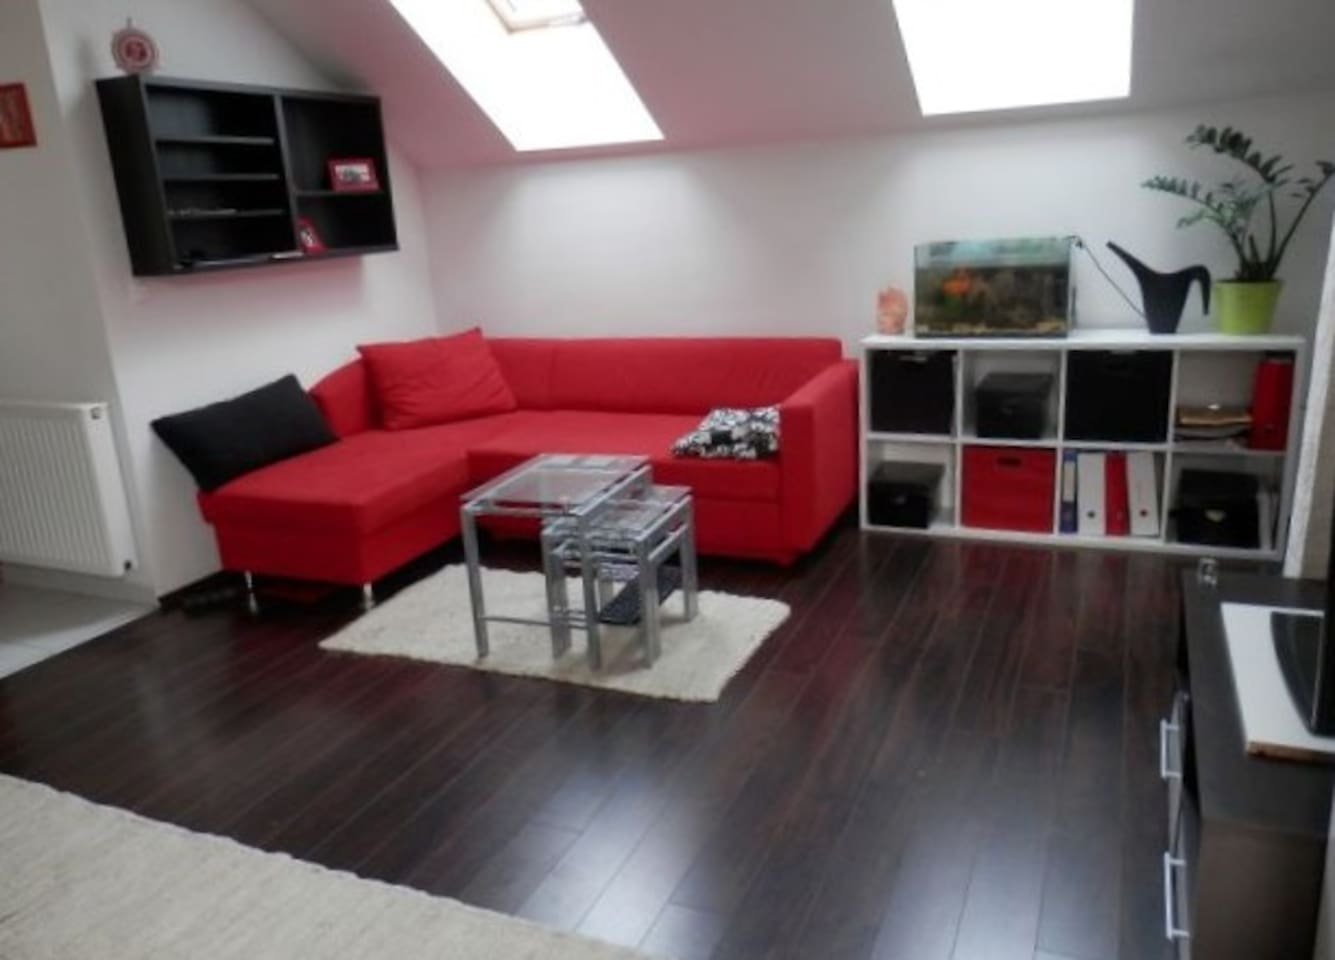 Lovely modern apartment for rent